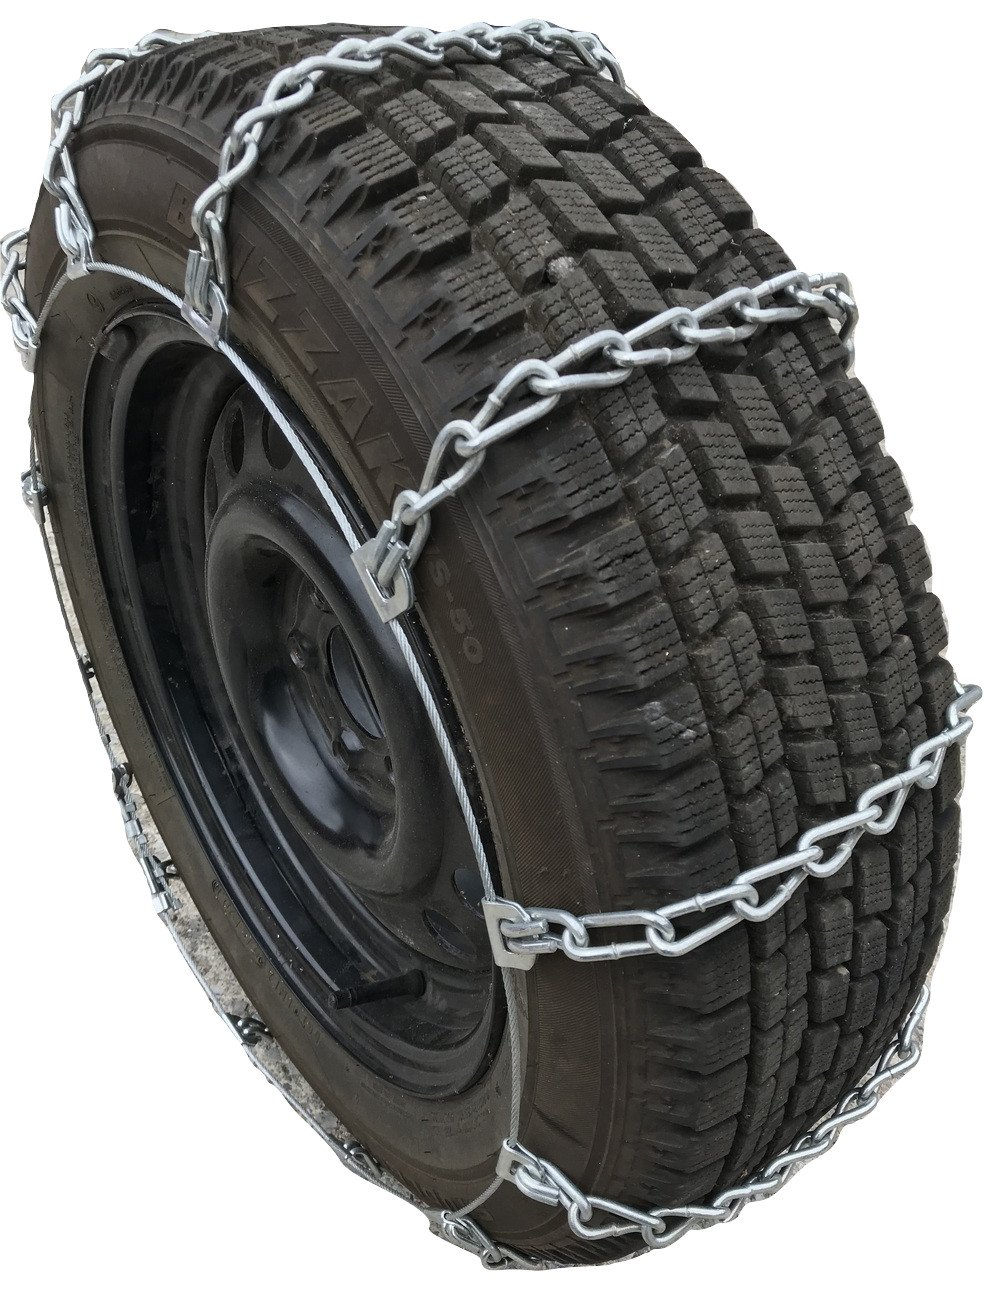 205//65-15 205//70-15 215//50-17 Cable Link Tire Chains 215//60-16 205//55-16 TireChain.com P215//60R16